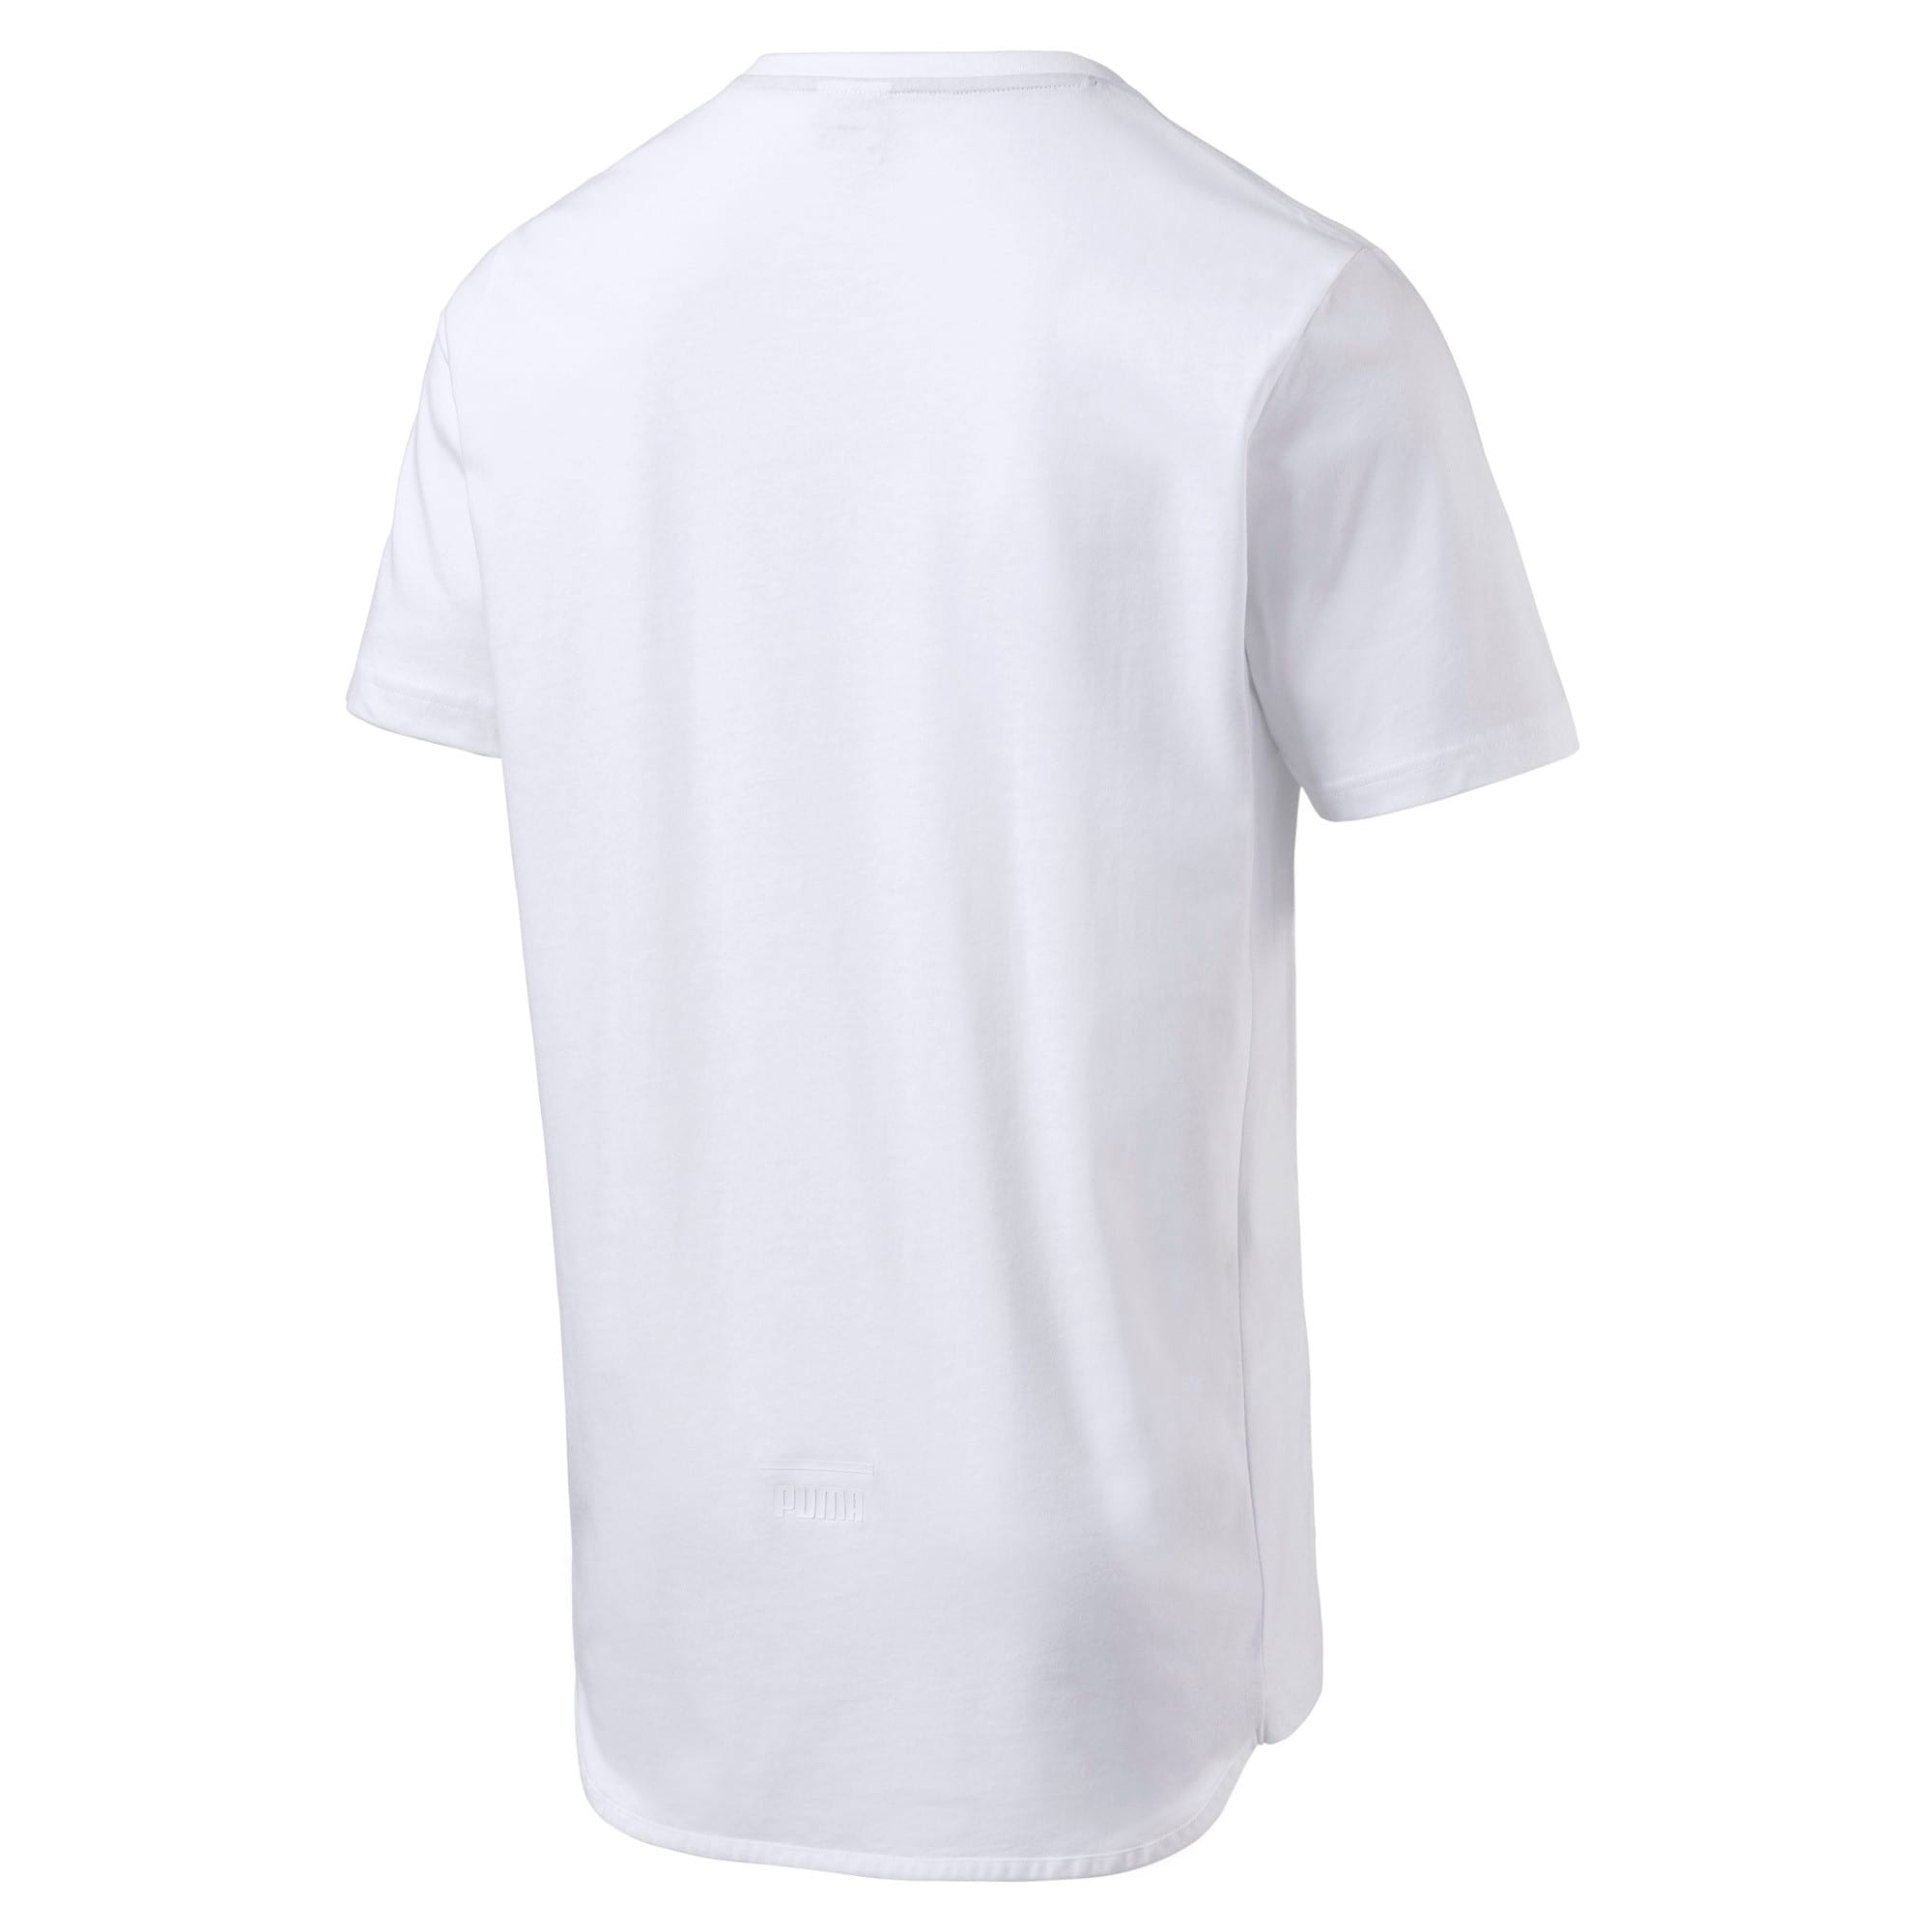 Thumbnail 2 of Pace Men's Graphic Tee, Puma White, medium-IND